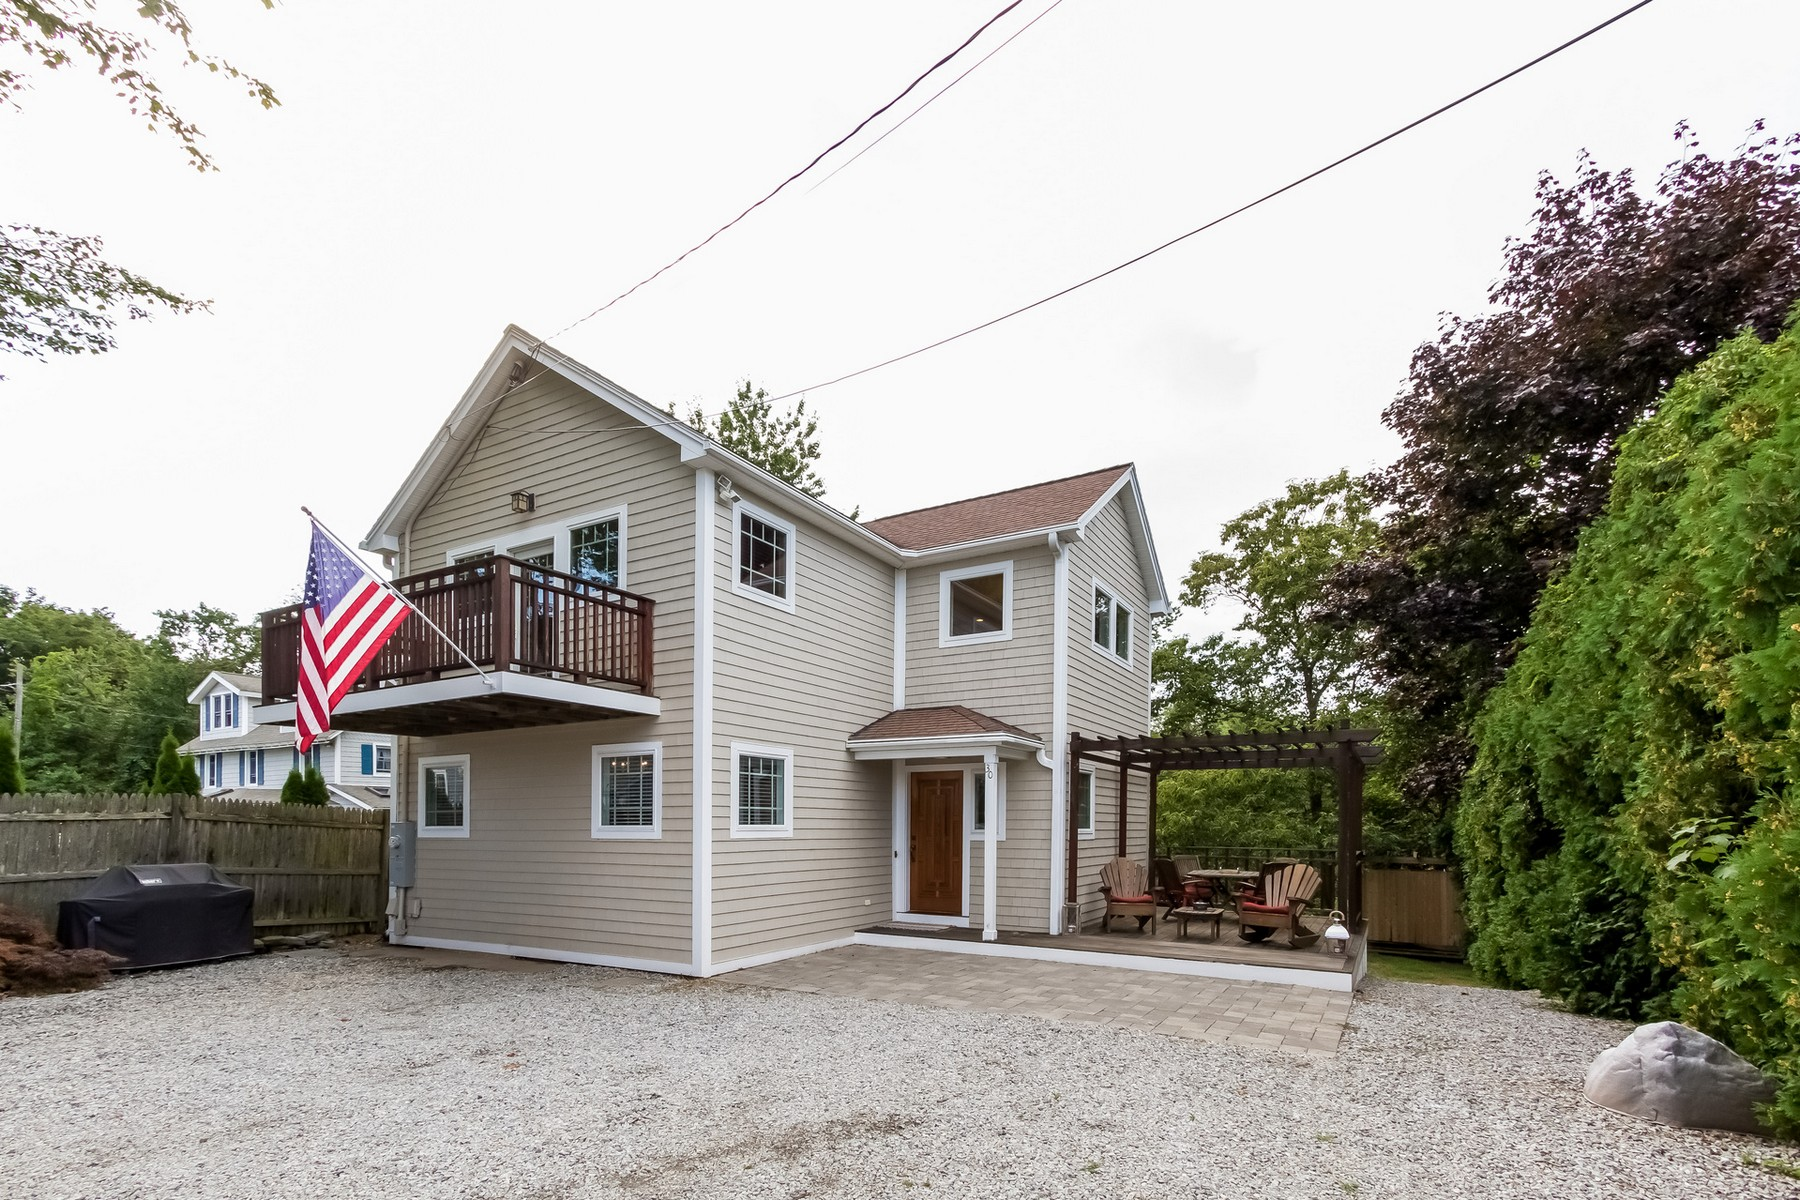 Maison unifamiliale pour l Vente à Beautiful Year Round Beach Home 30 2nd Ave Westbrook, Connecticut, 06498 États-Unis